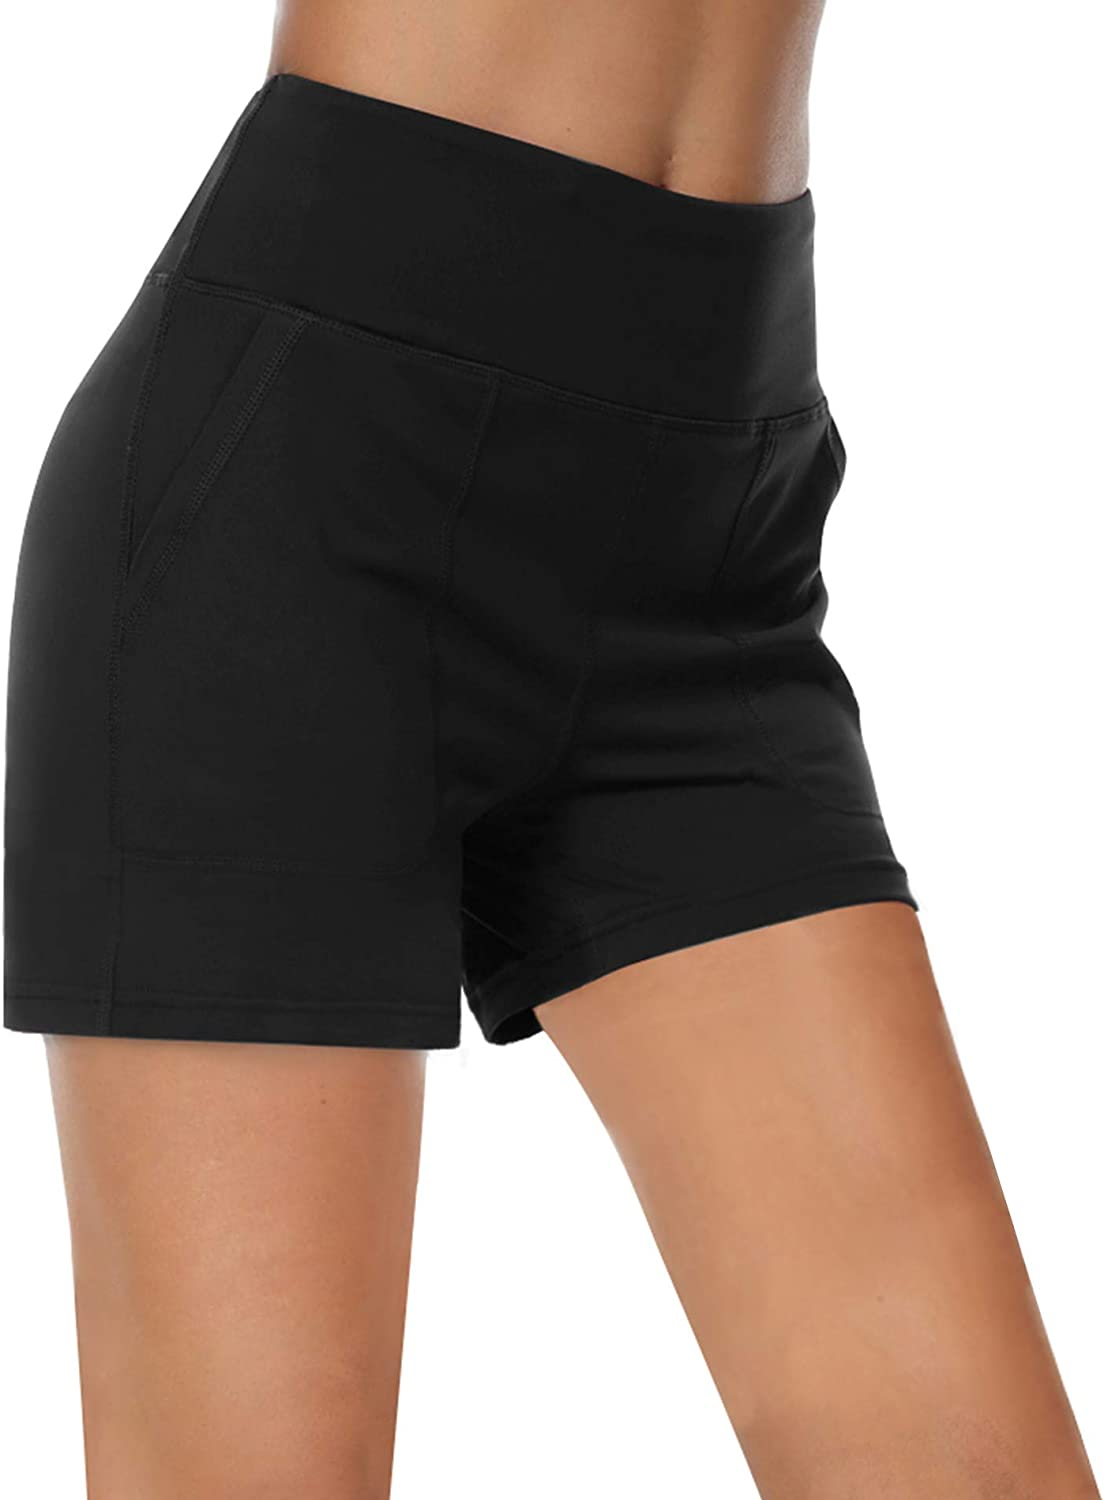 ChinFun High Waist Yoga Shorts for Women Tummy Control Athletic Lounge Workout Running Shorts with Pockets